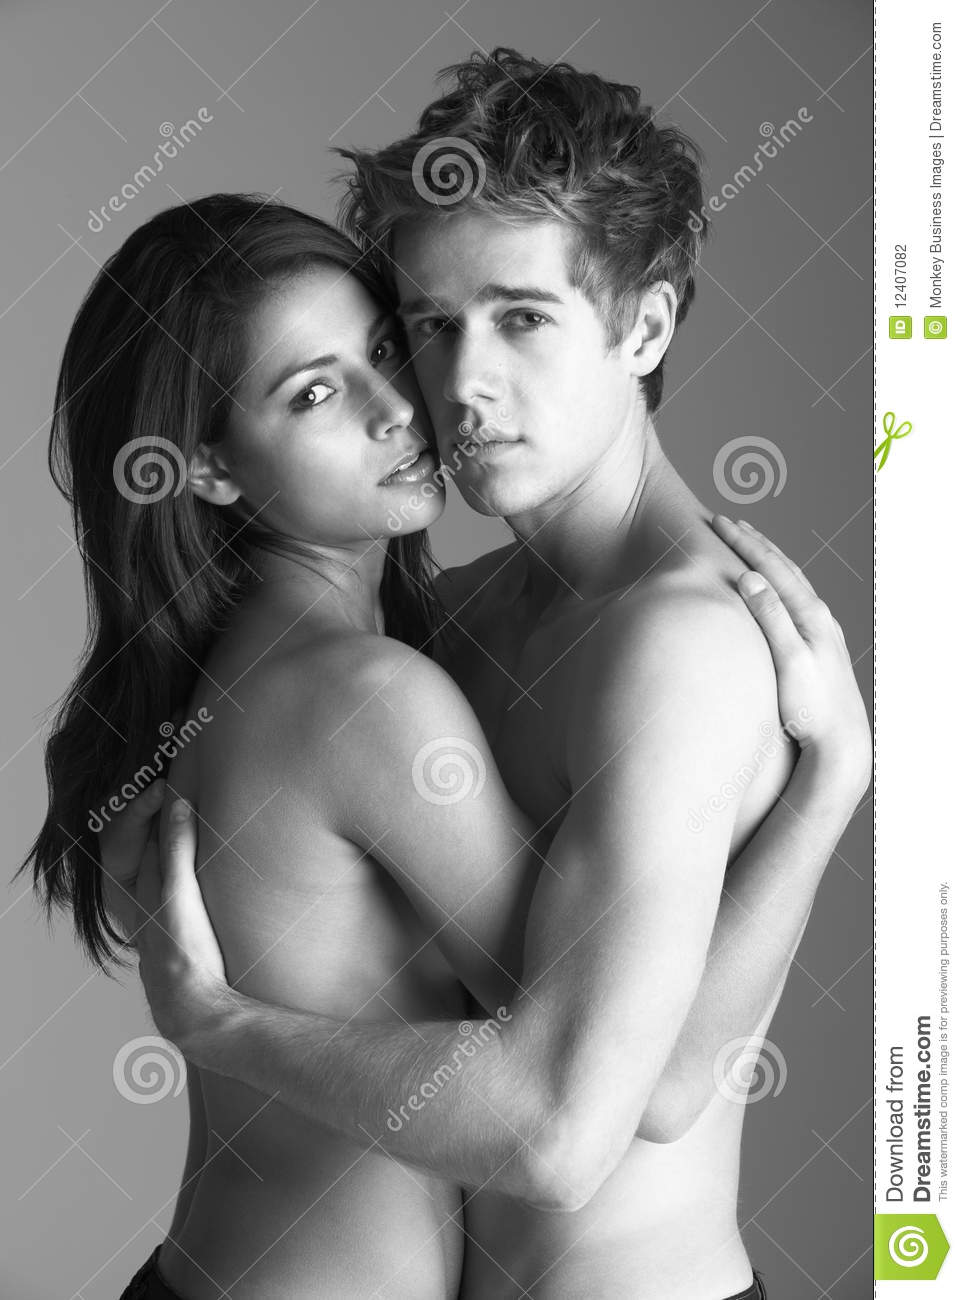 Nude Couples Black White 20